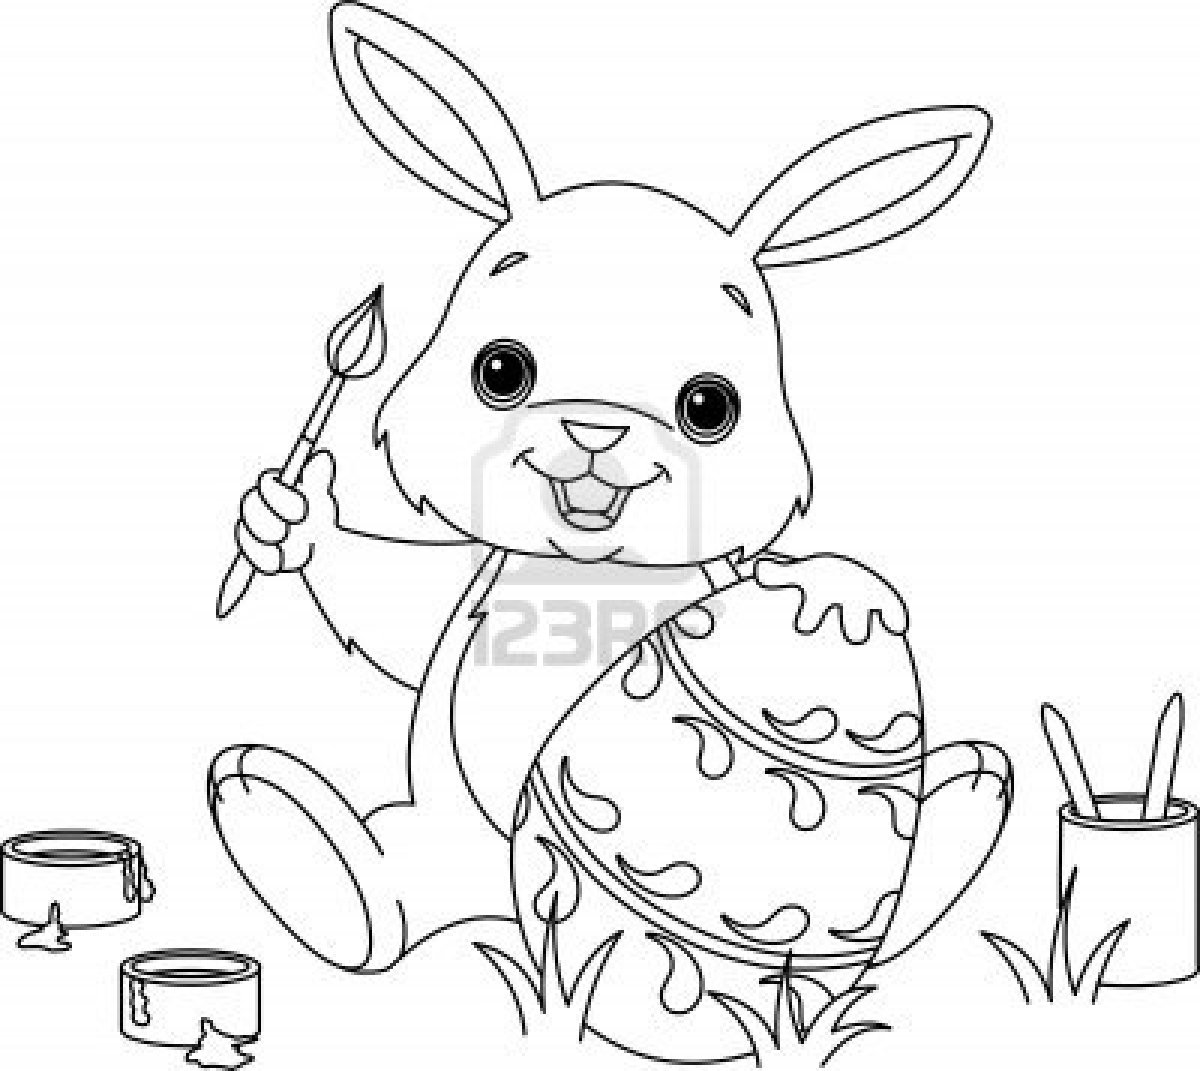 easter bunny pictures to color - Easter Printable Coloring Pages